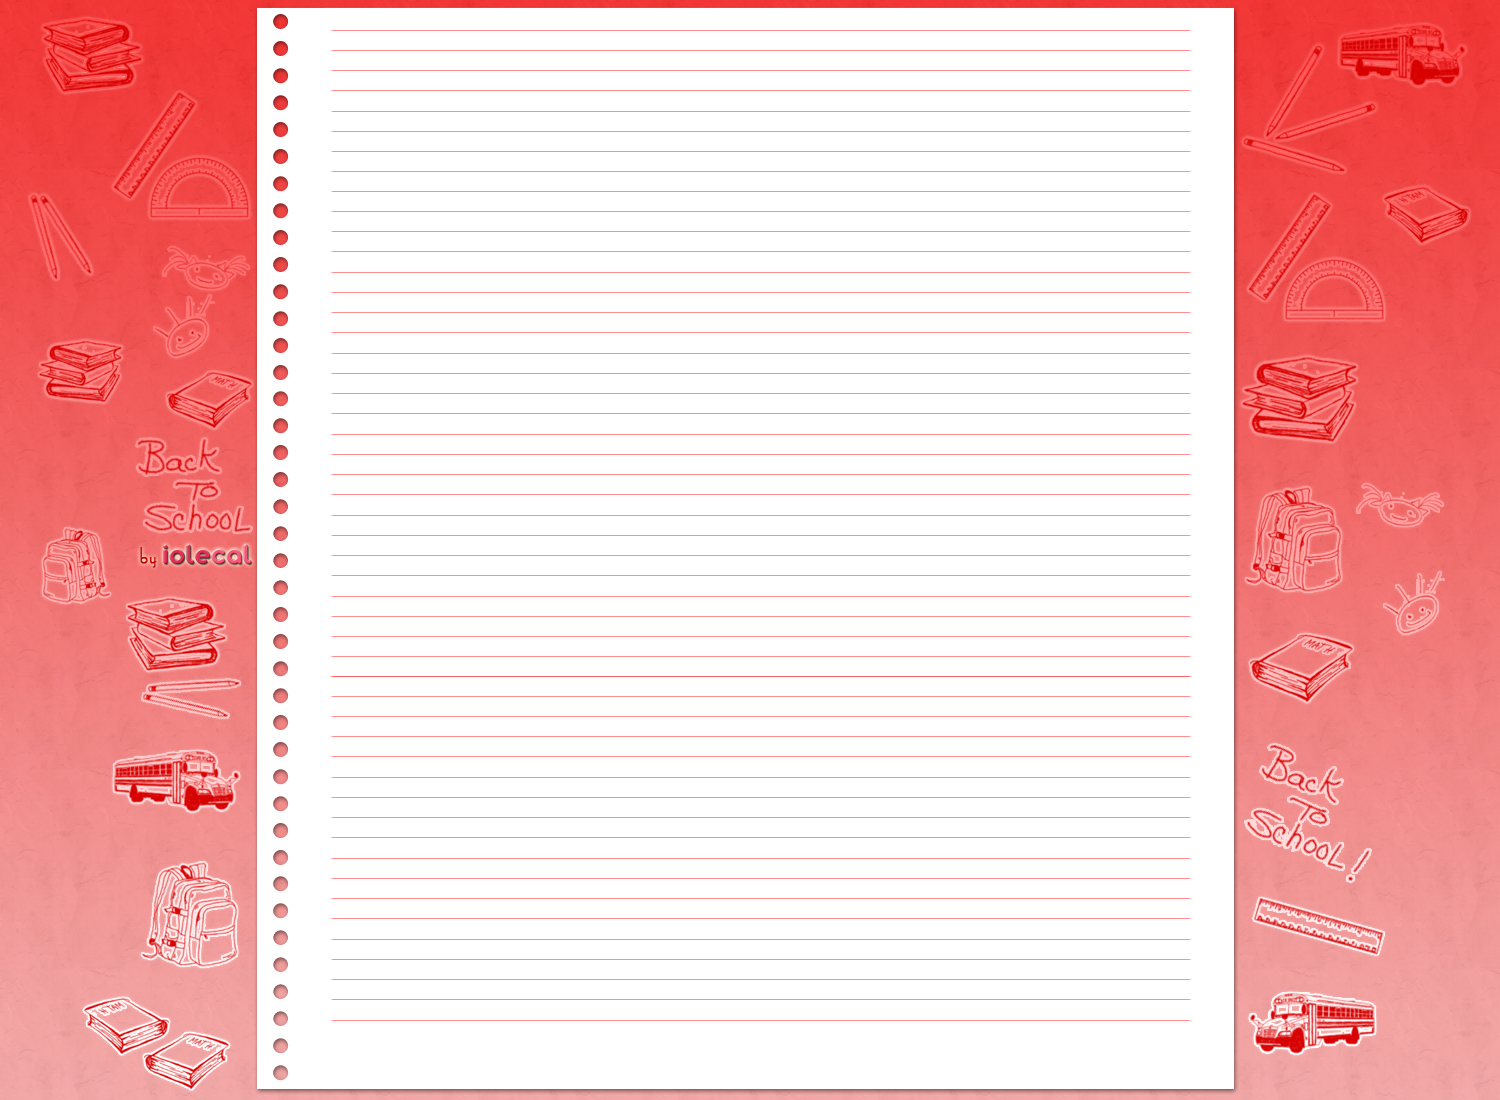 How to Write a Document